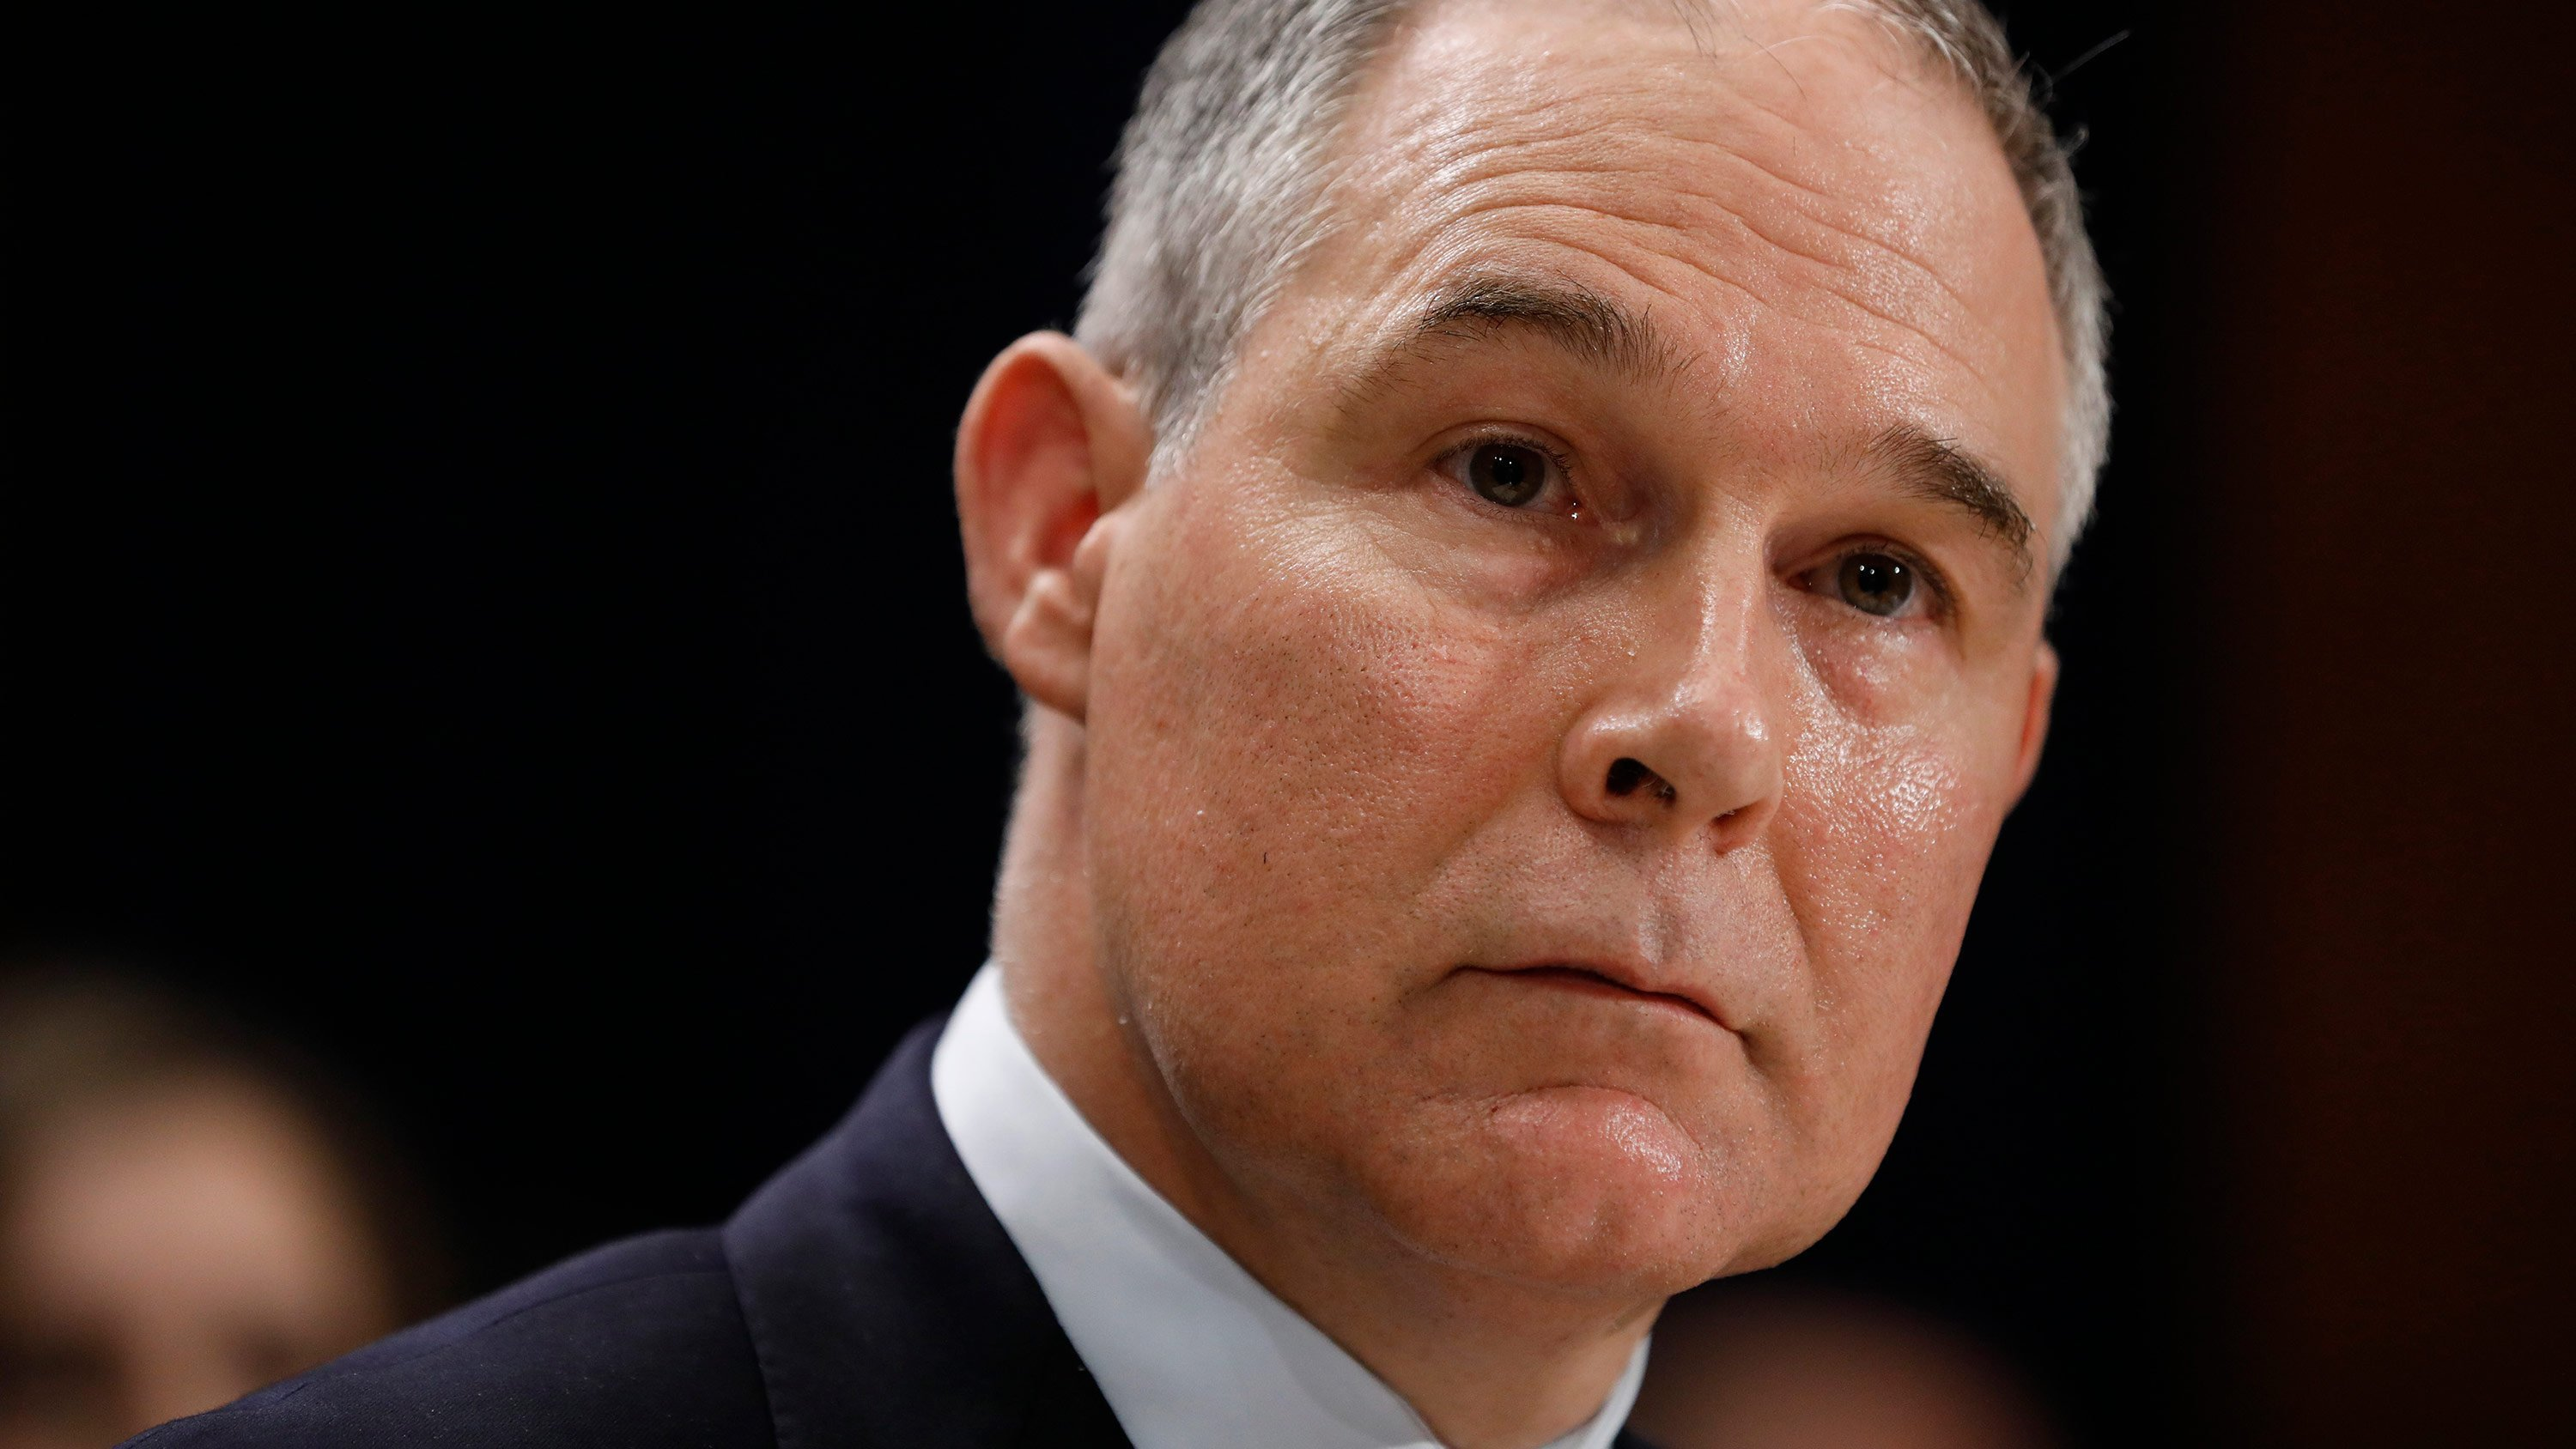 House Democrats fed up with Scott Pruitt's endless stream of questionable ethical behavior are seeking to take the investigation against him to the FBI and Department of Justice